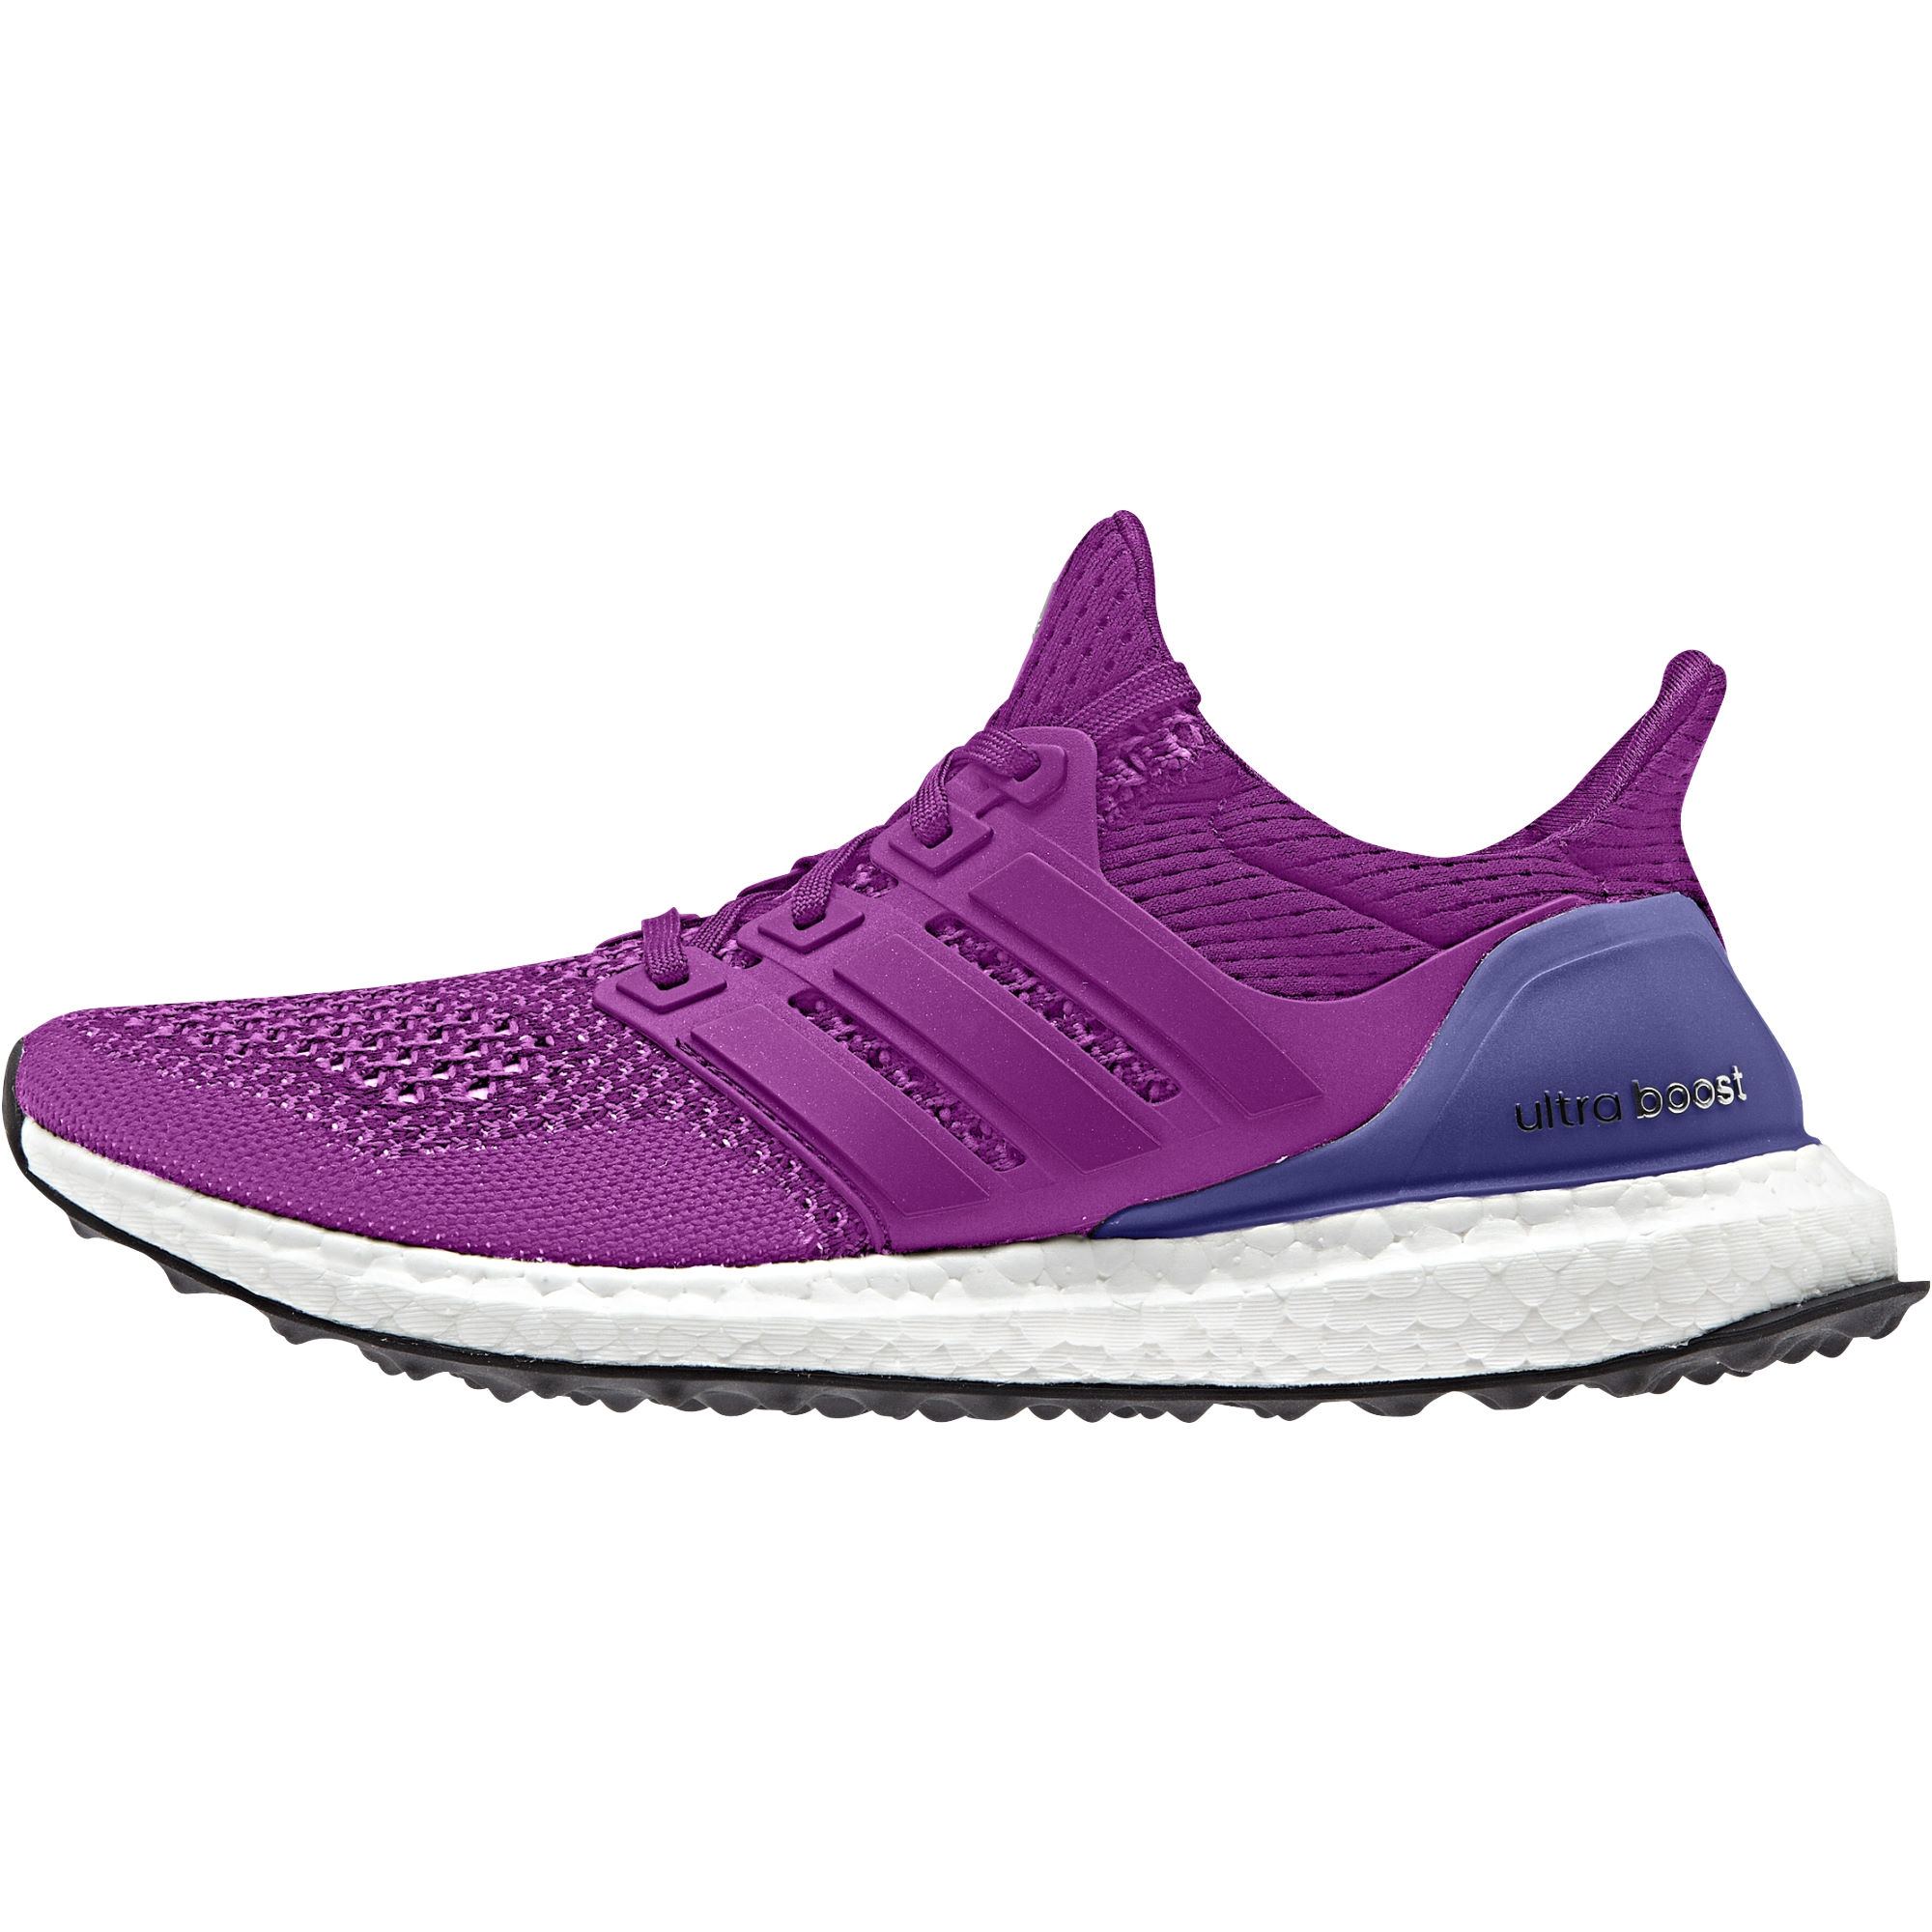 Adidas Ultra Boost Running Shoes Ladies